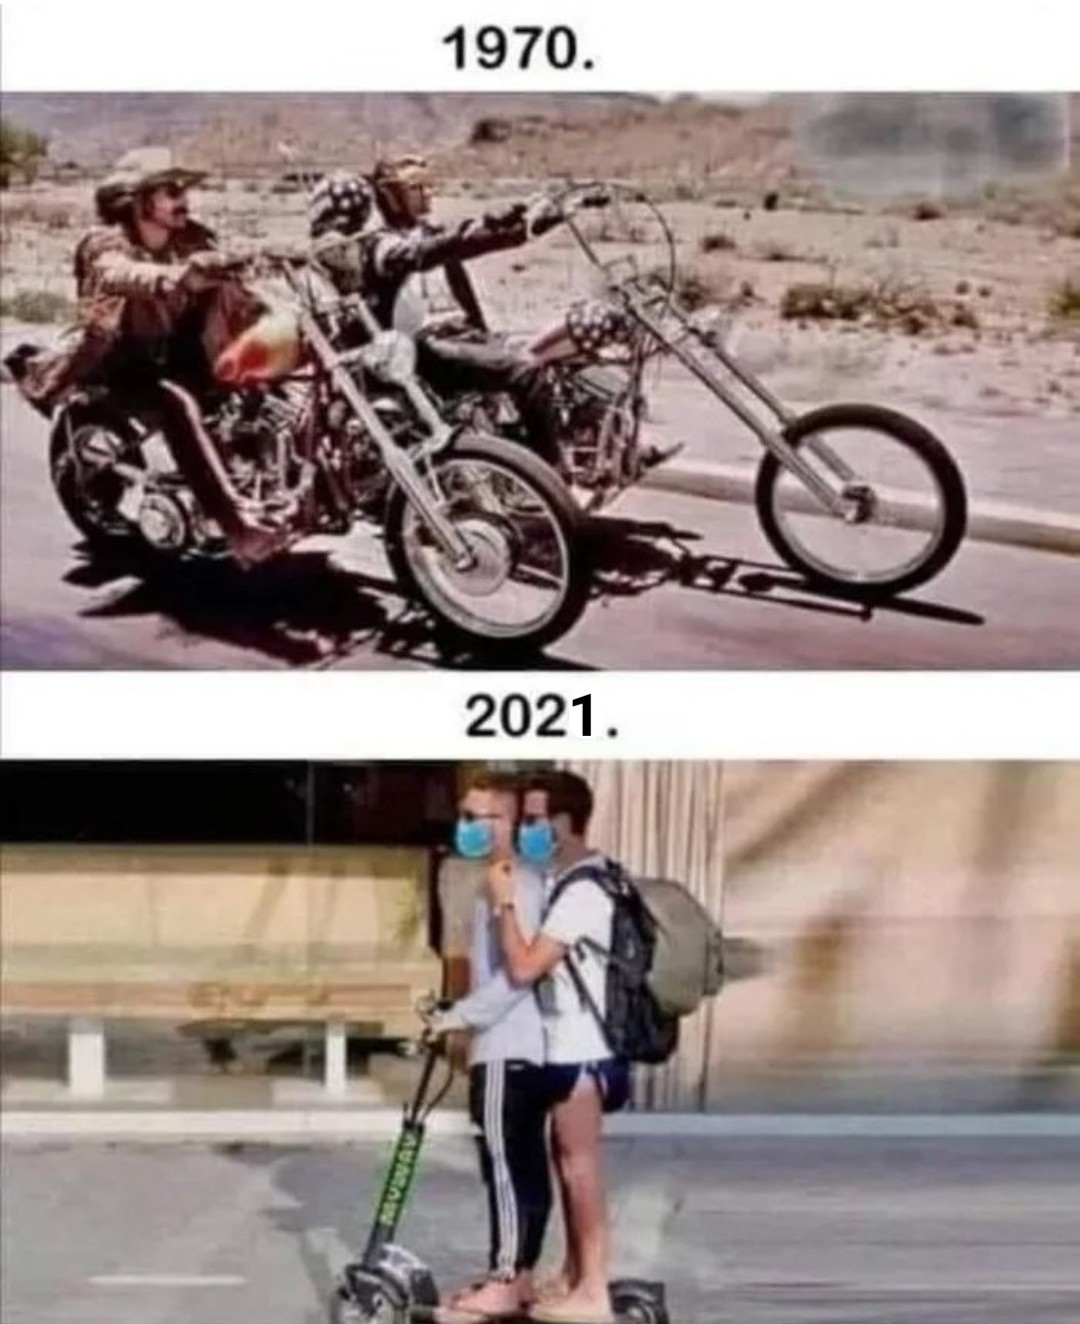 2021 be like - meme